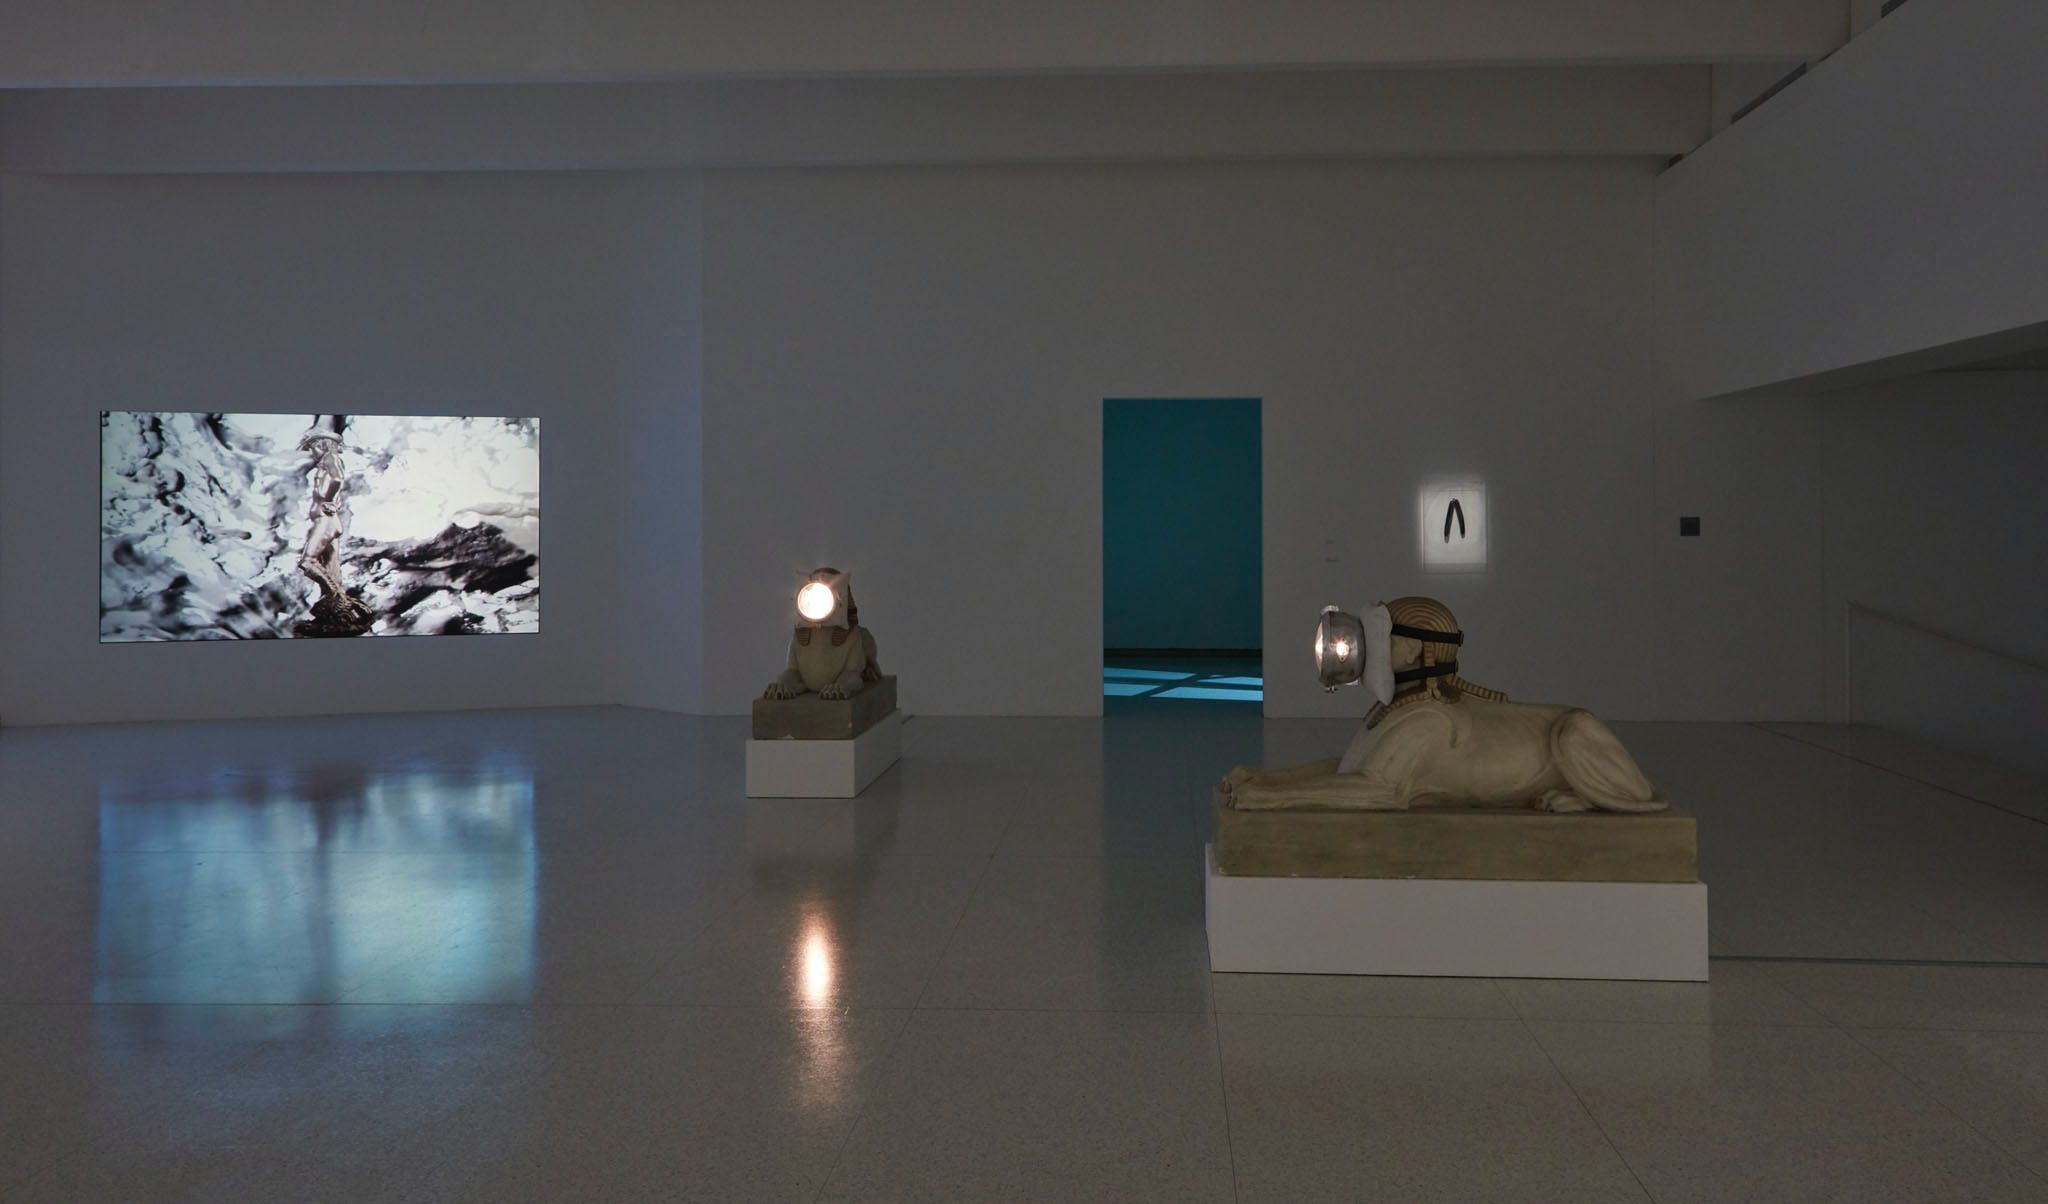 View of the exhibition Less Than One, 2016; (left to right): Trisha Donnelly, Untitled, 2014; Trisha Donnelly, Untitled, 2008; Trisha Donnelly, Untitled, 2004-2007 (Photo: Gene Pittman, ©Walker Art Center)